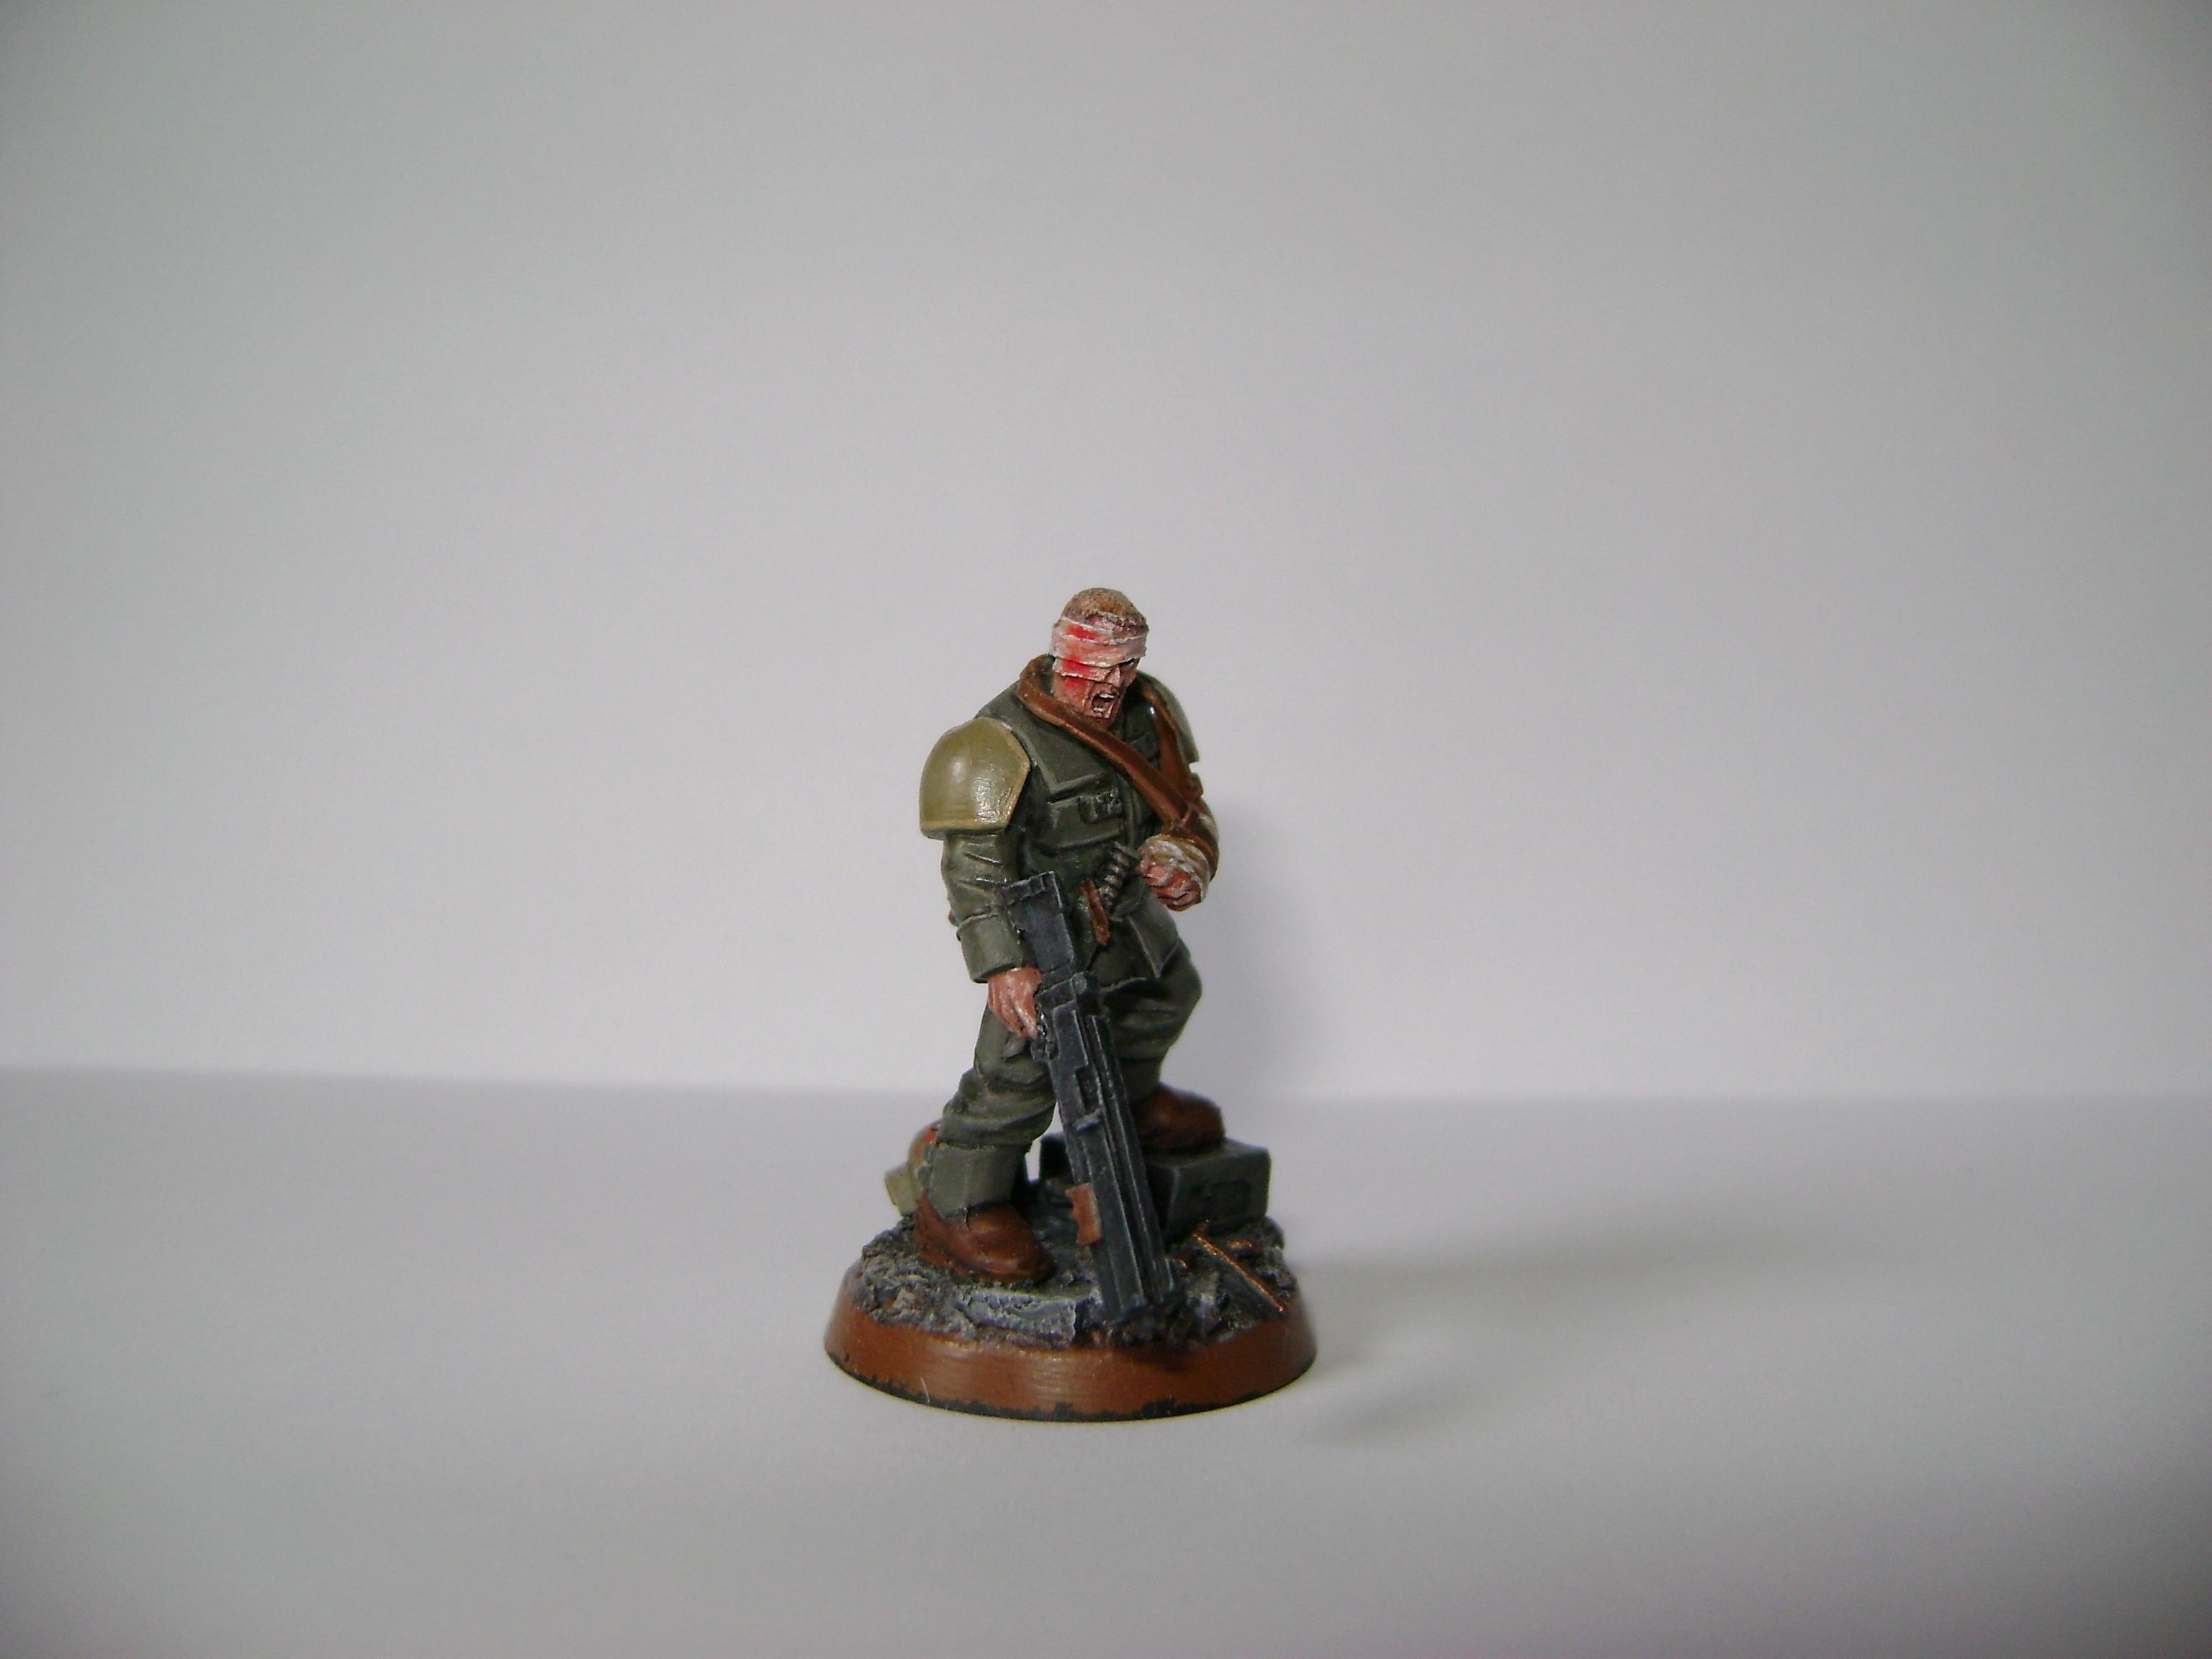 Crew, Imperial Guard, Veteran, Warhammer 40,000, Wounded